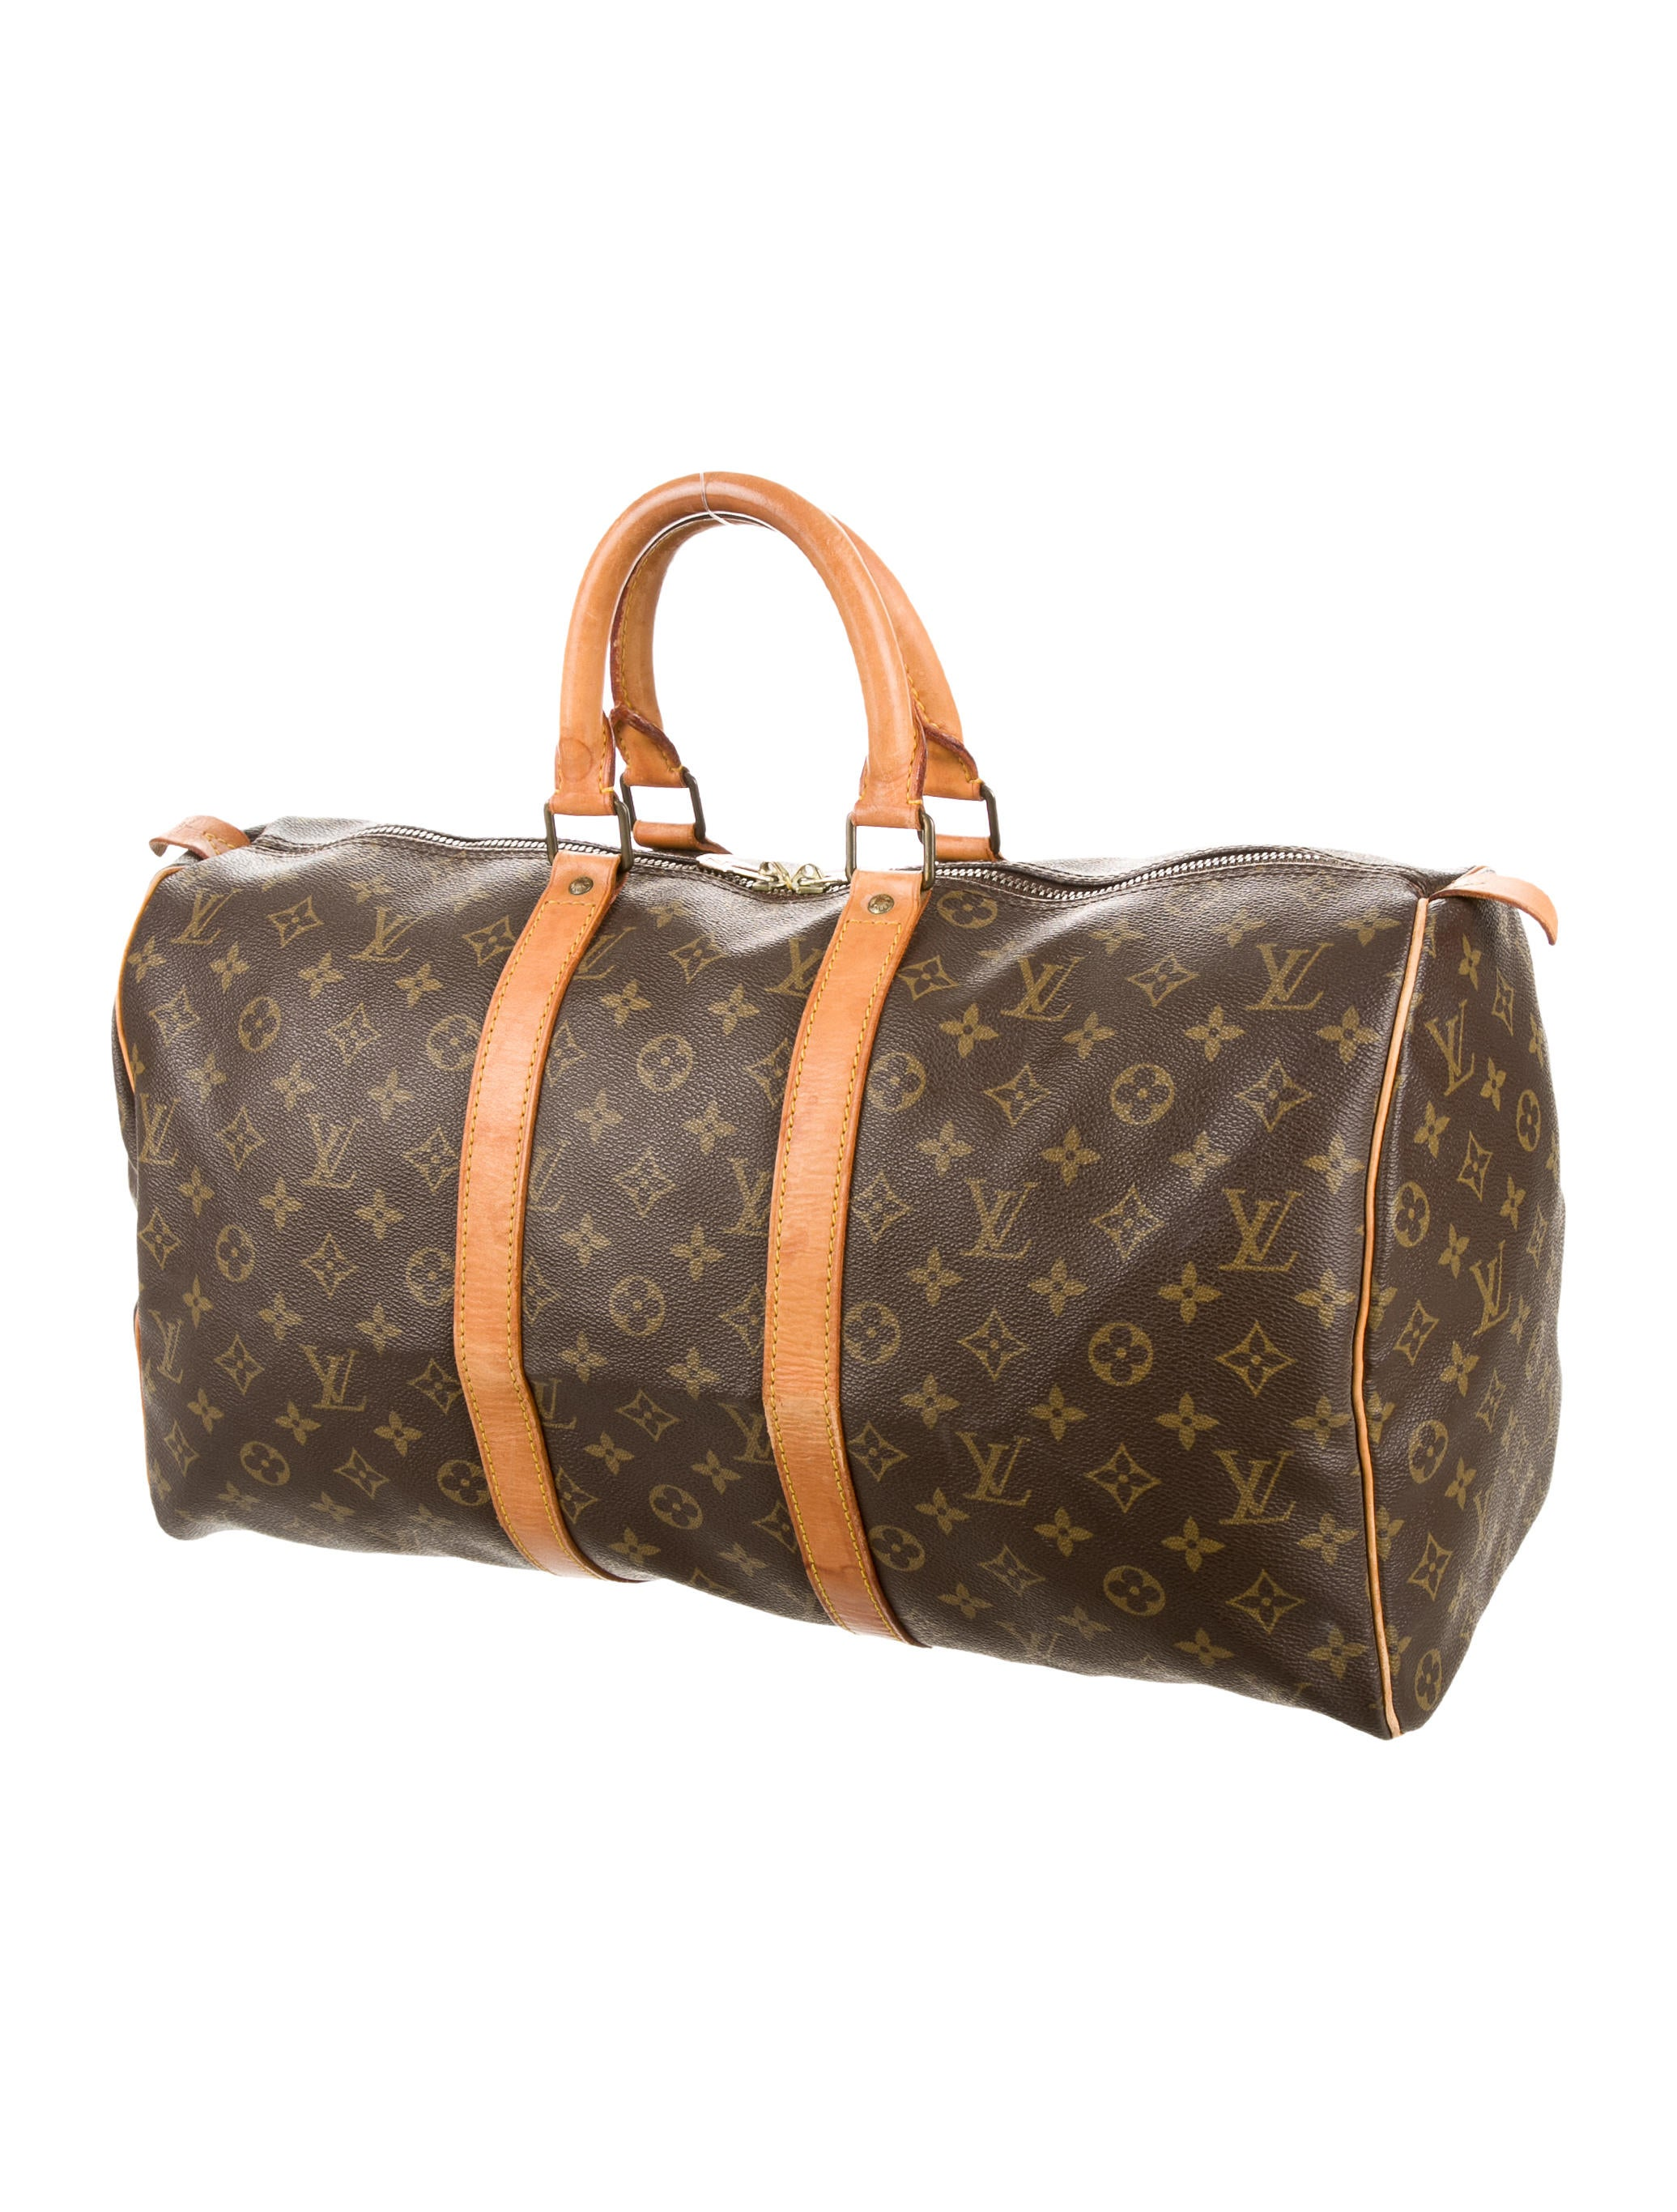 louis vuitton monogram keepall 45 handbags lou108922 the realreal. Black Bedroom Furniture Sets. Home Design Ideas